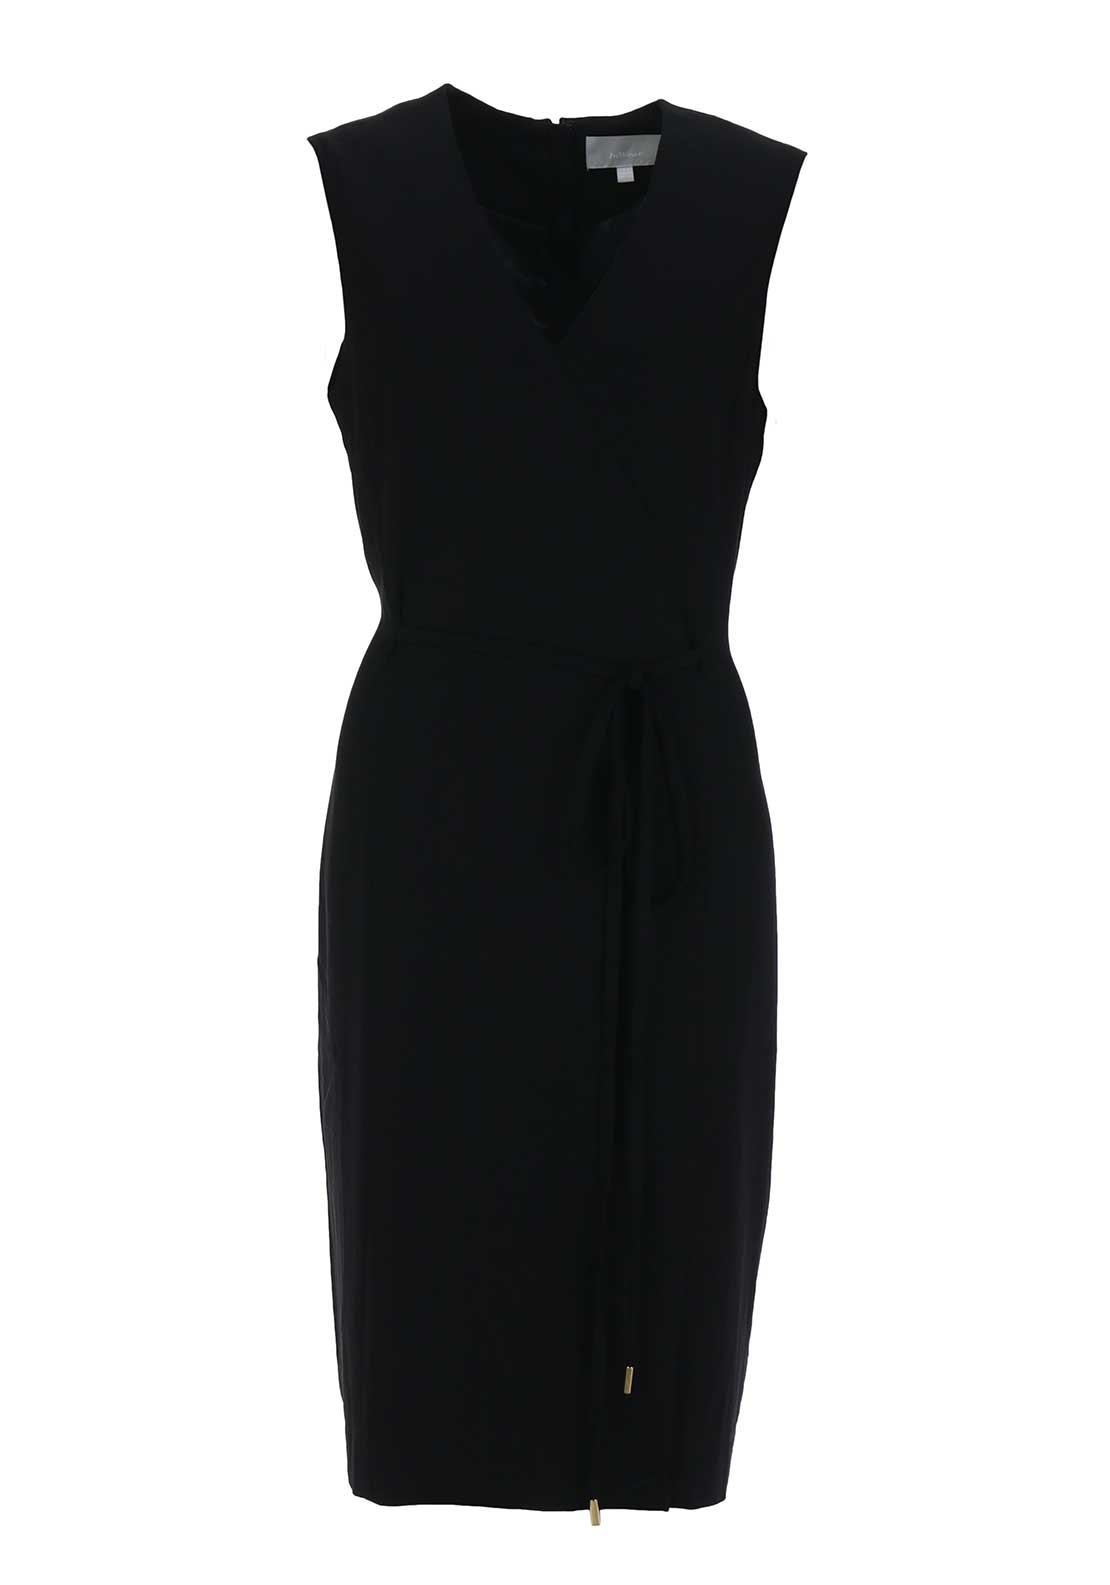 Inwear V Neck Pencil Dress, Black